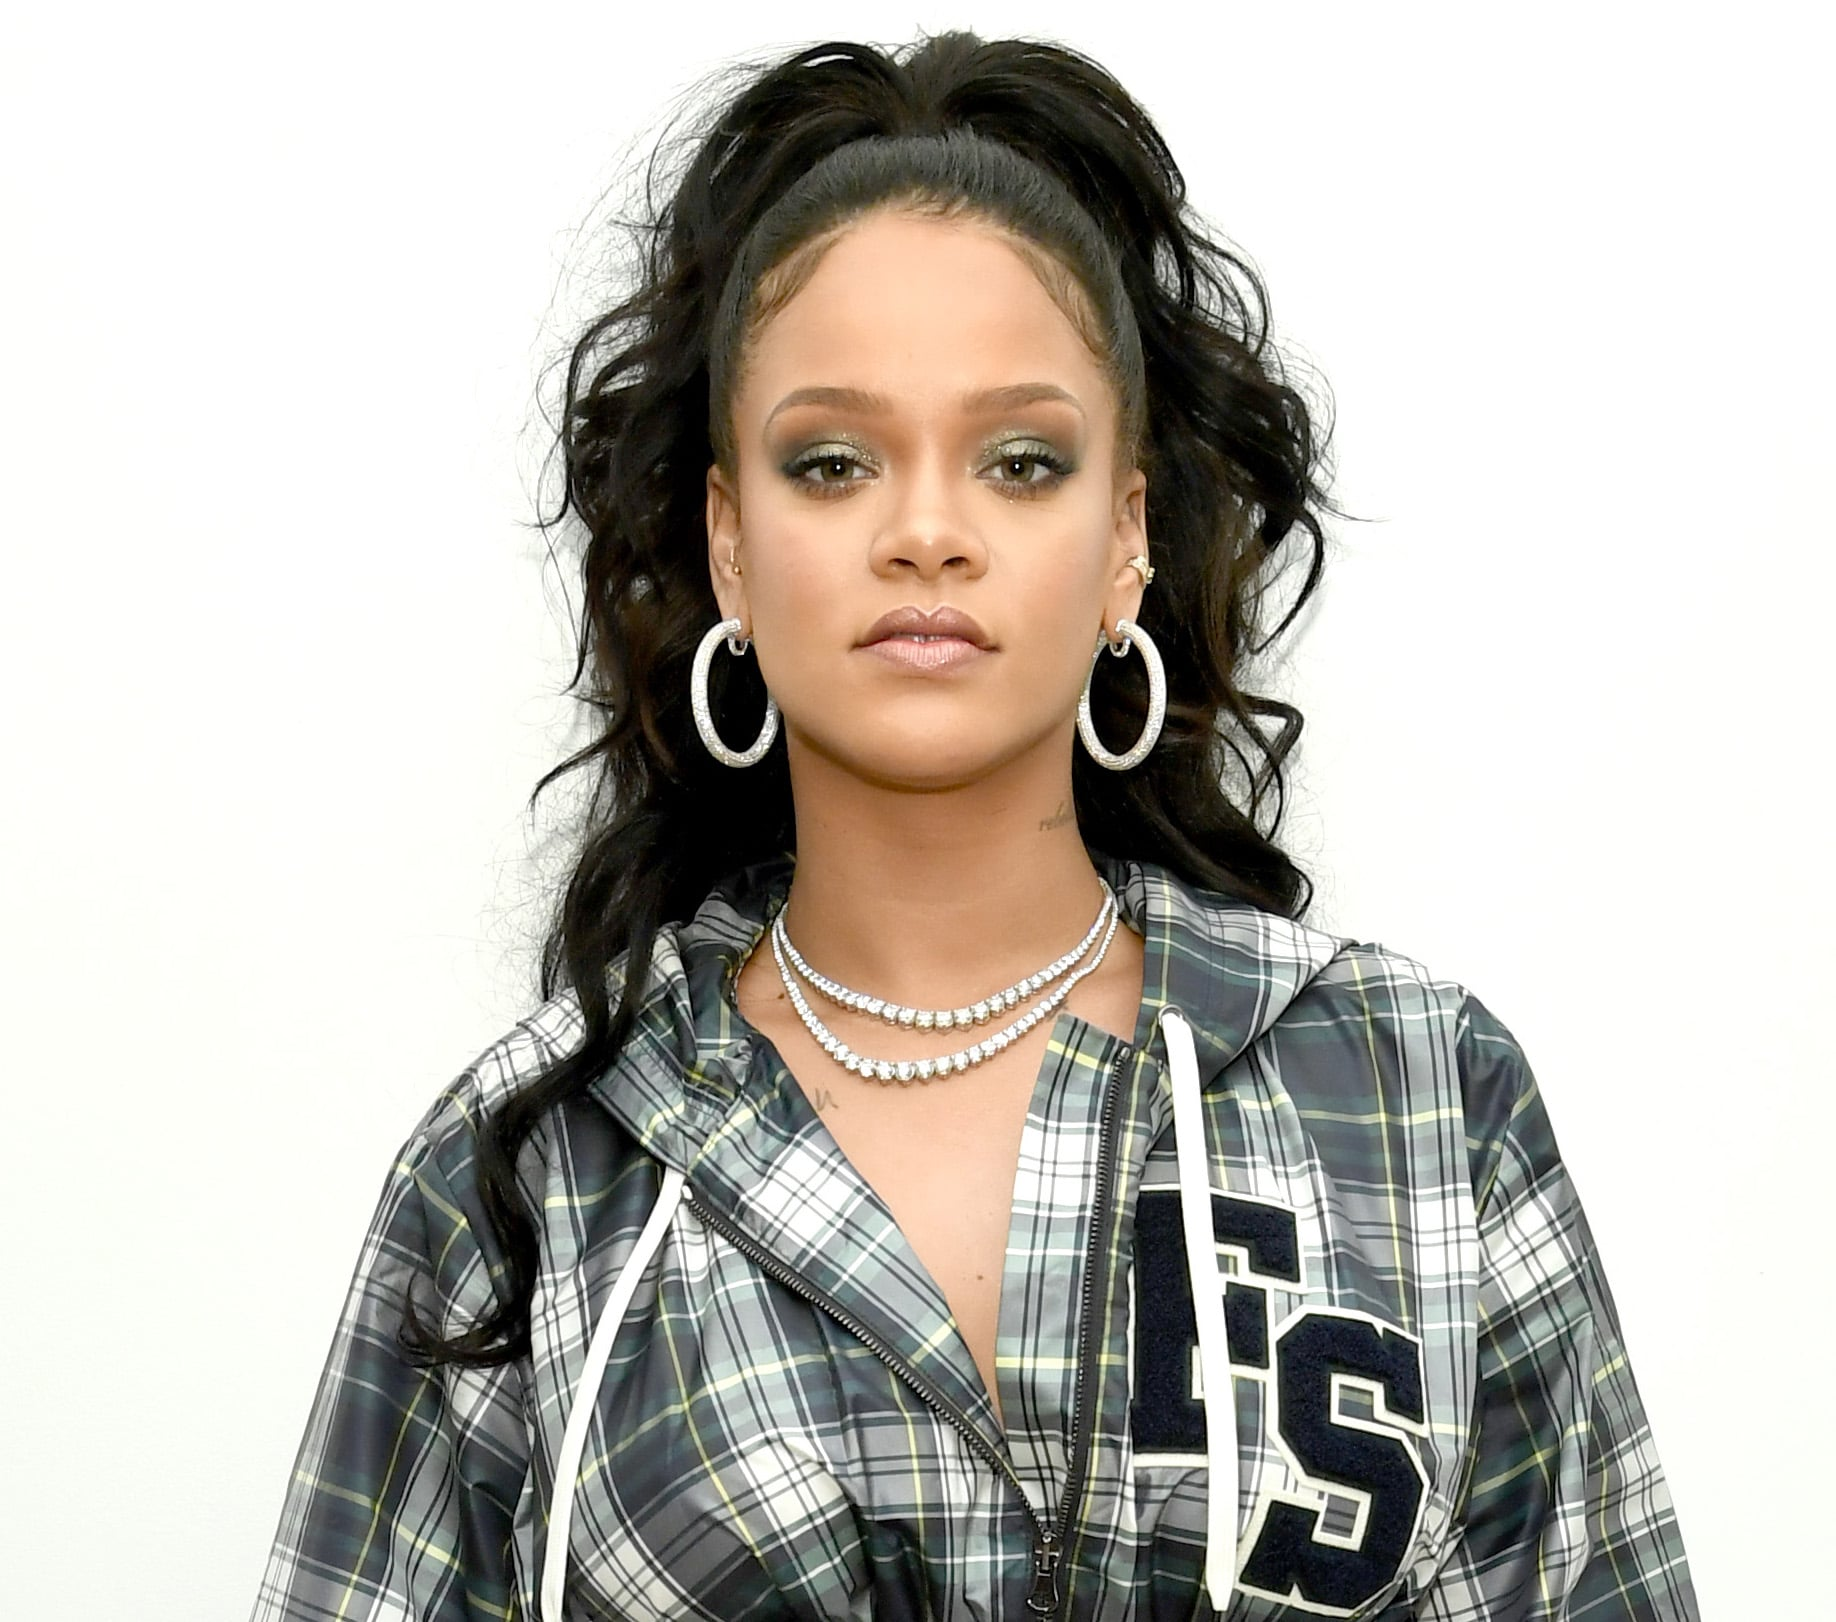 Rihanna criticises companies who use transgender people as a 'marketing tool'